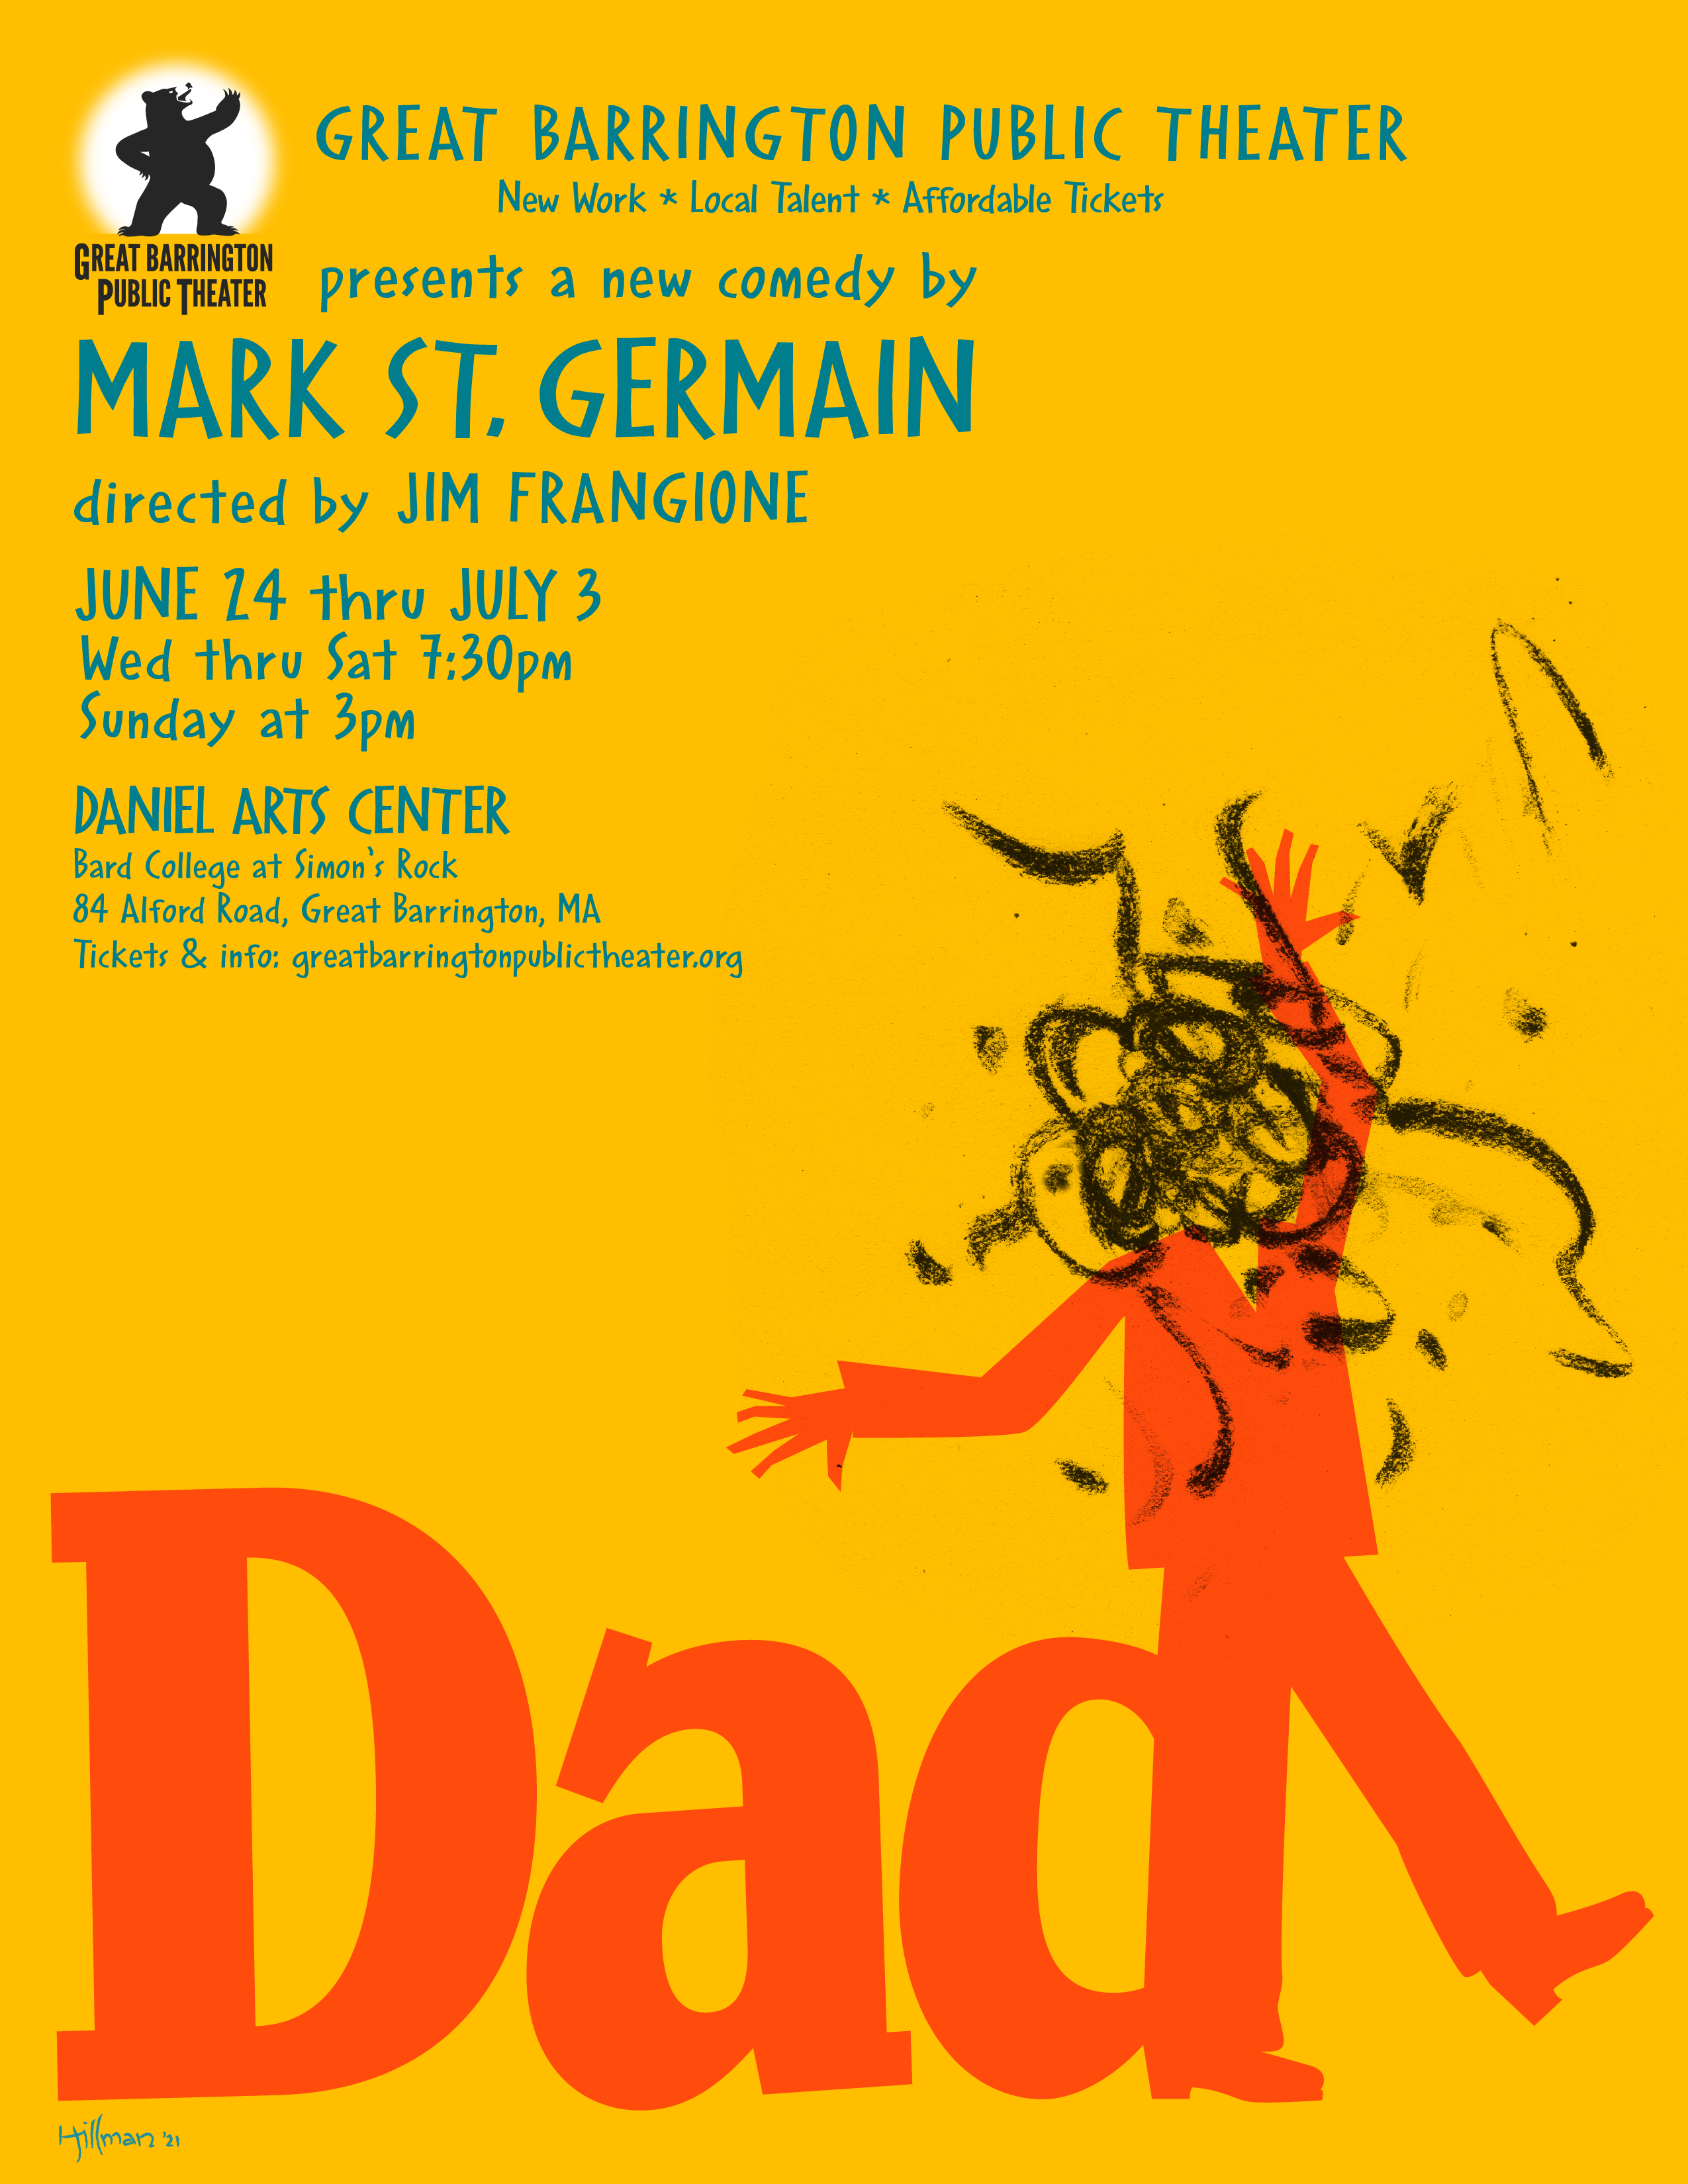 """<strong>Berkshire County-based graphic designer Ben Hillman designed posters for this season's productions of """"Dad"""" and """"The Christopher Boy's Communion"""" at Great Barrington Public Theater. Hillman also designed the theater company's logo.<em>Design by Ben Hillman</em></strong>"""